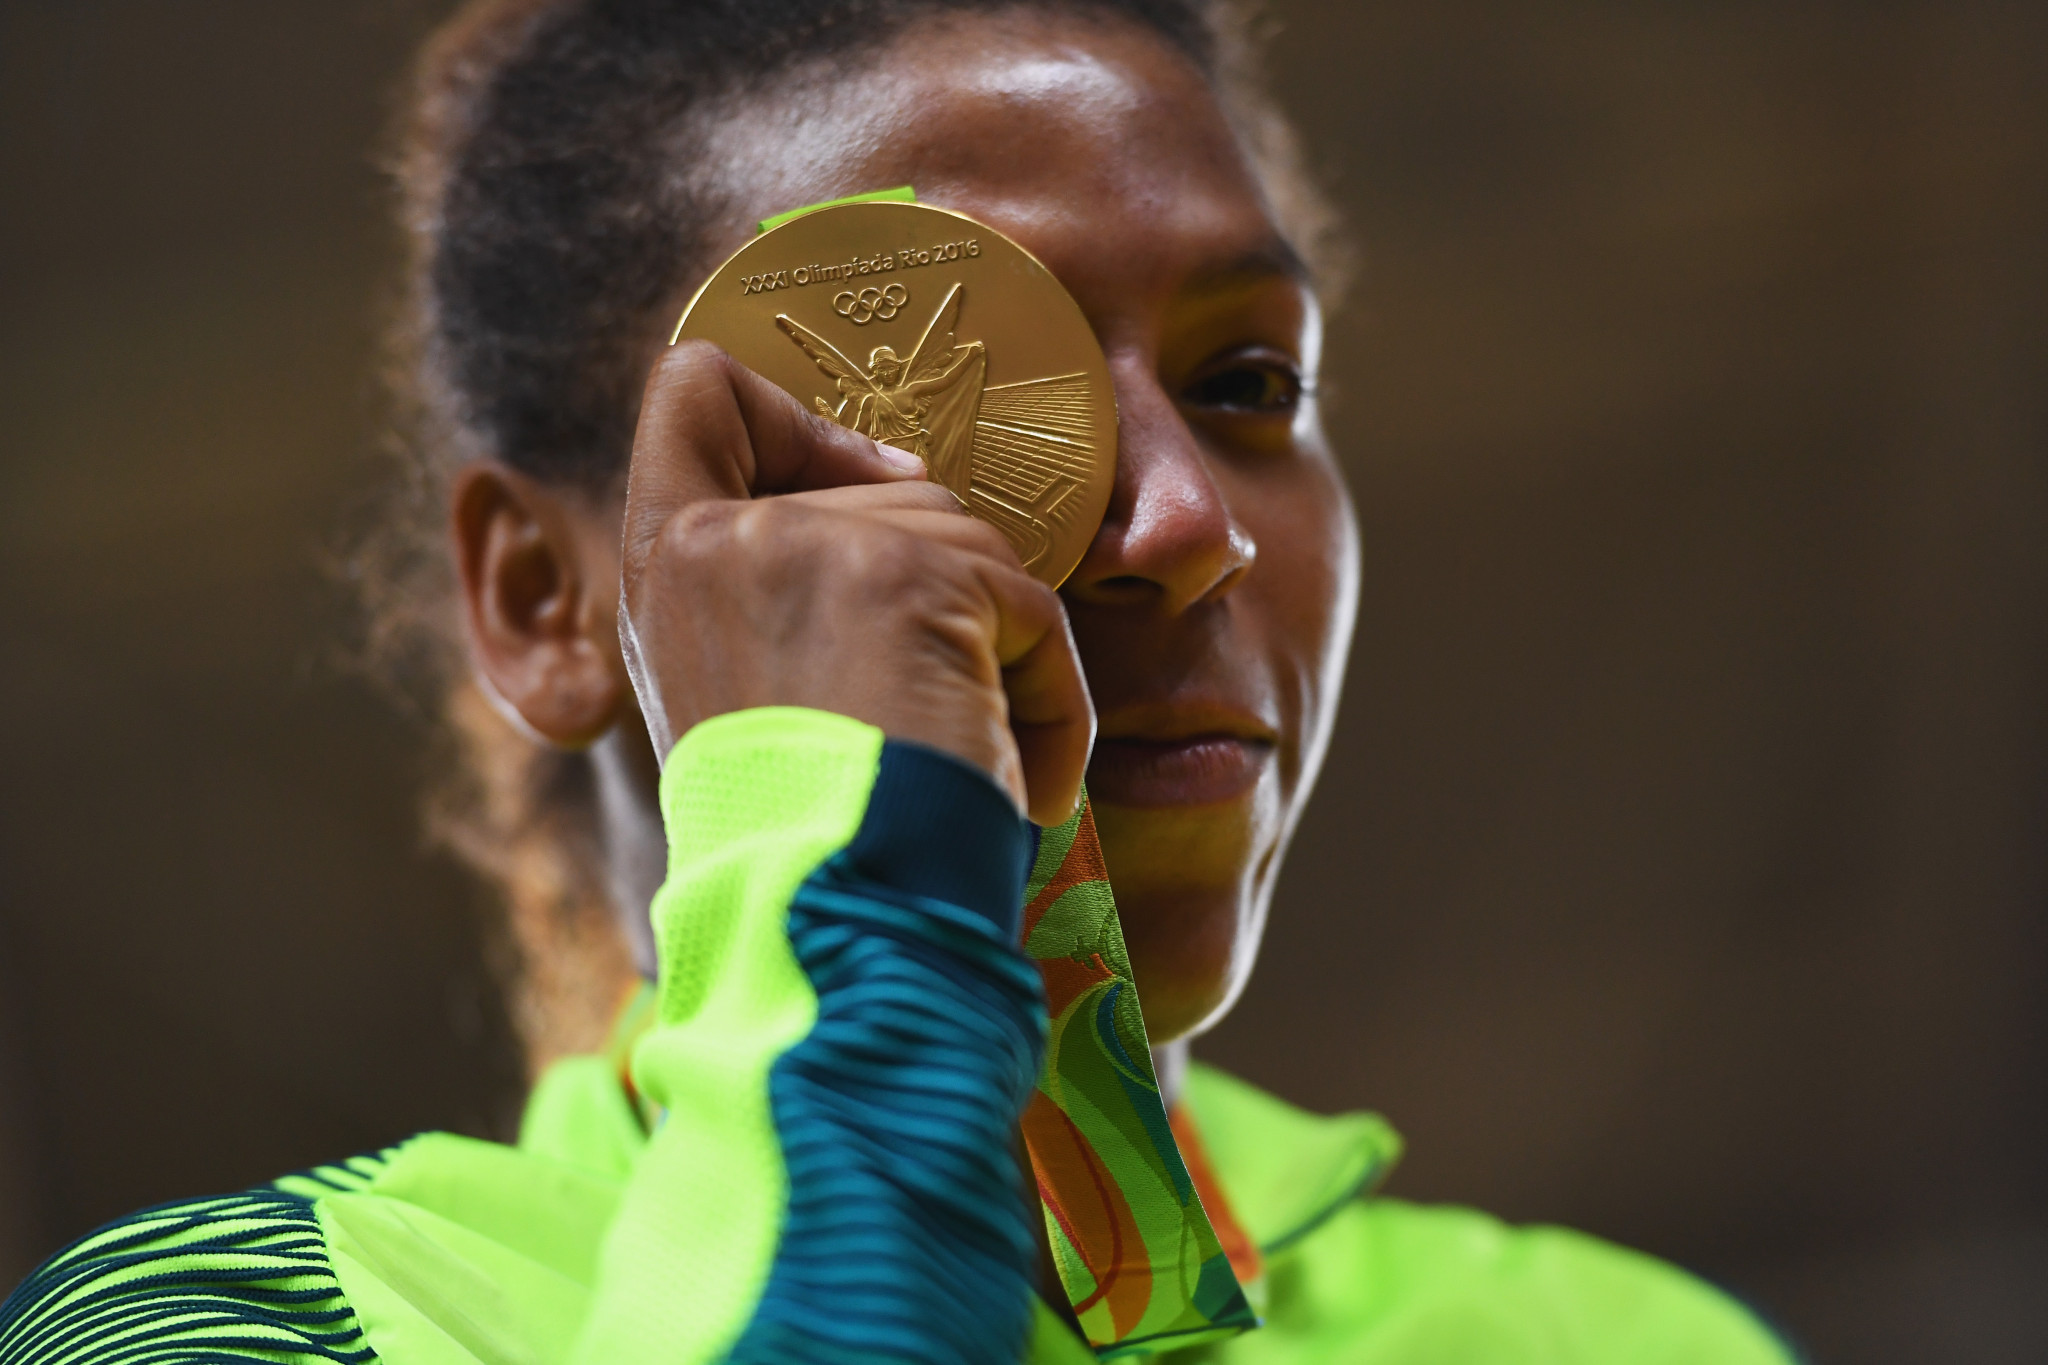 Silva's gold at Rio 2016 was a noteworthy moment for the host nation as she was the first Brazilian athlete to stand on top of the medal podium ©Getty Images